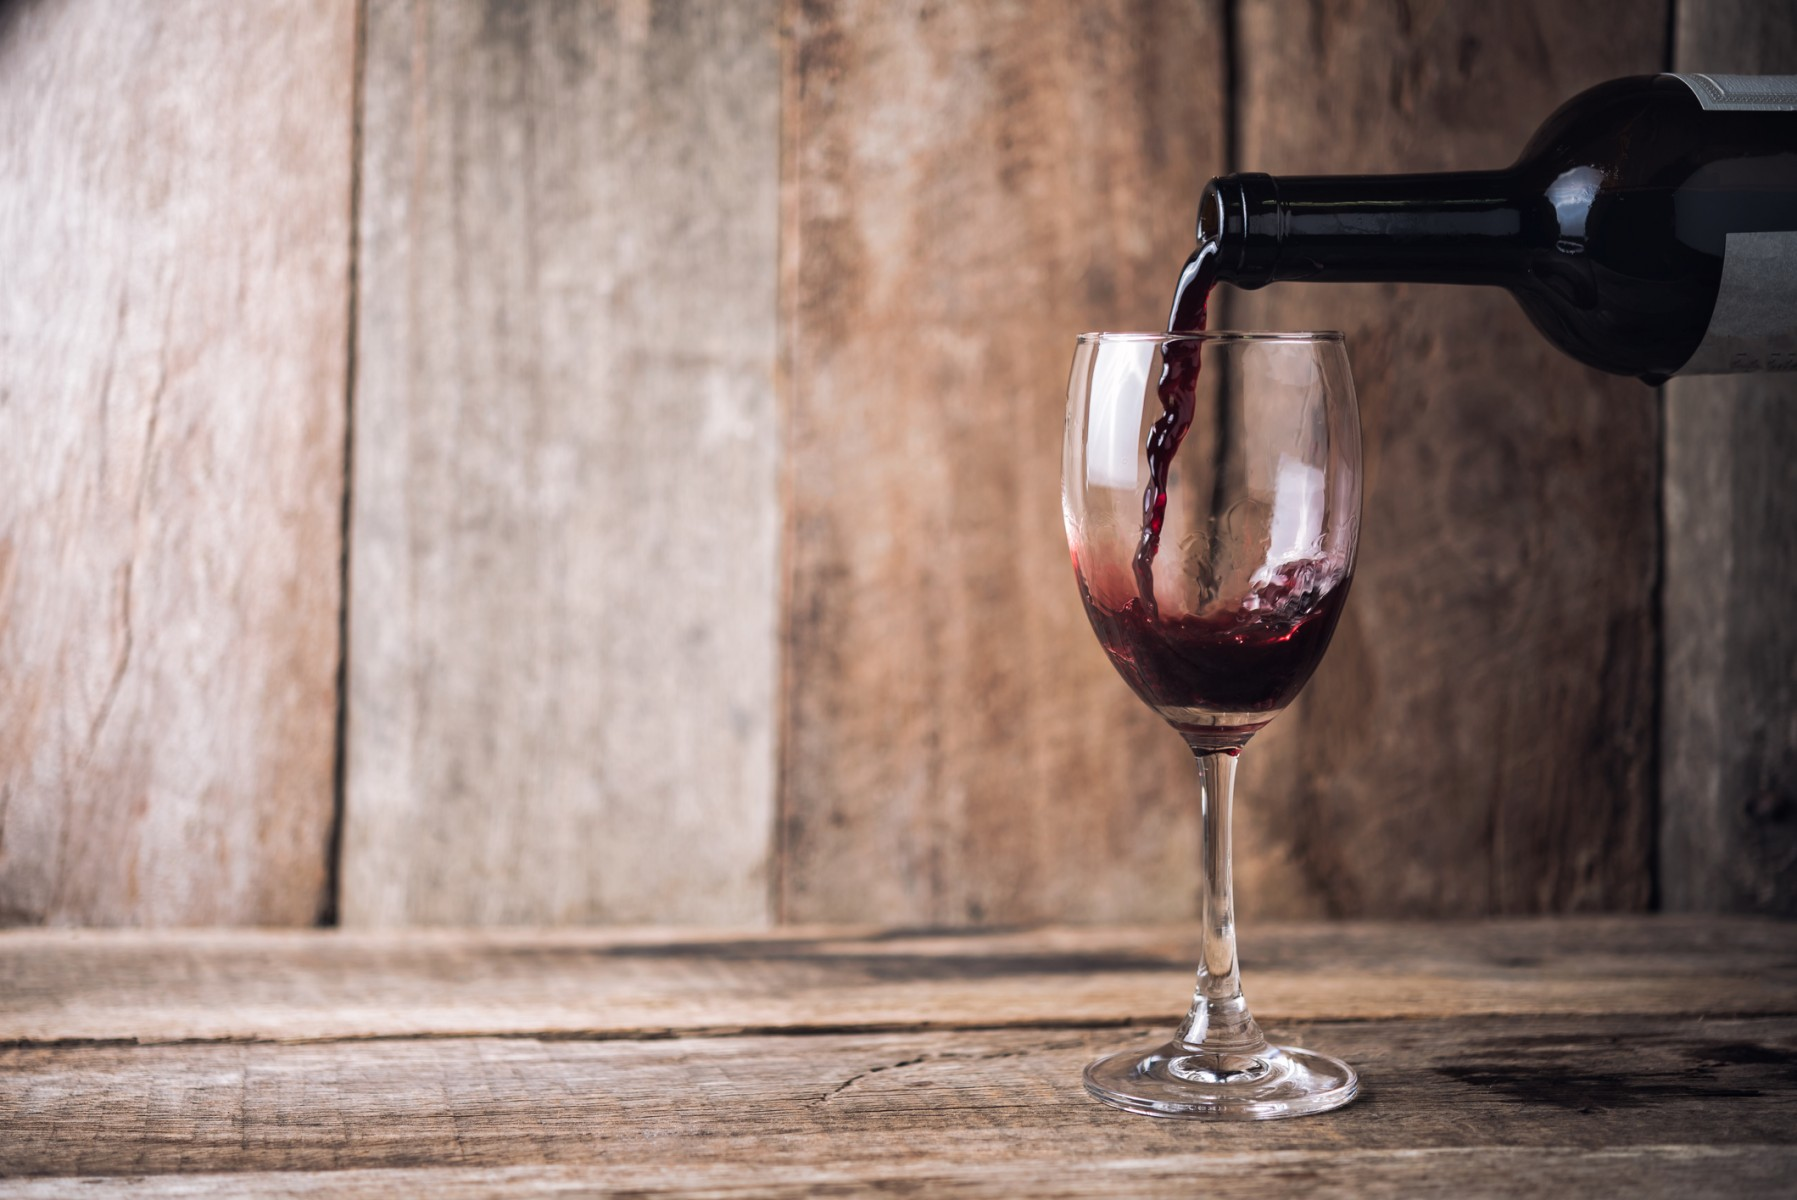 Drinking red wine in moderation may reduce one of the risk factors for breast cancer, a study shows. Photo by Getty.